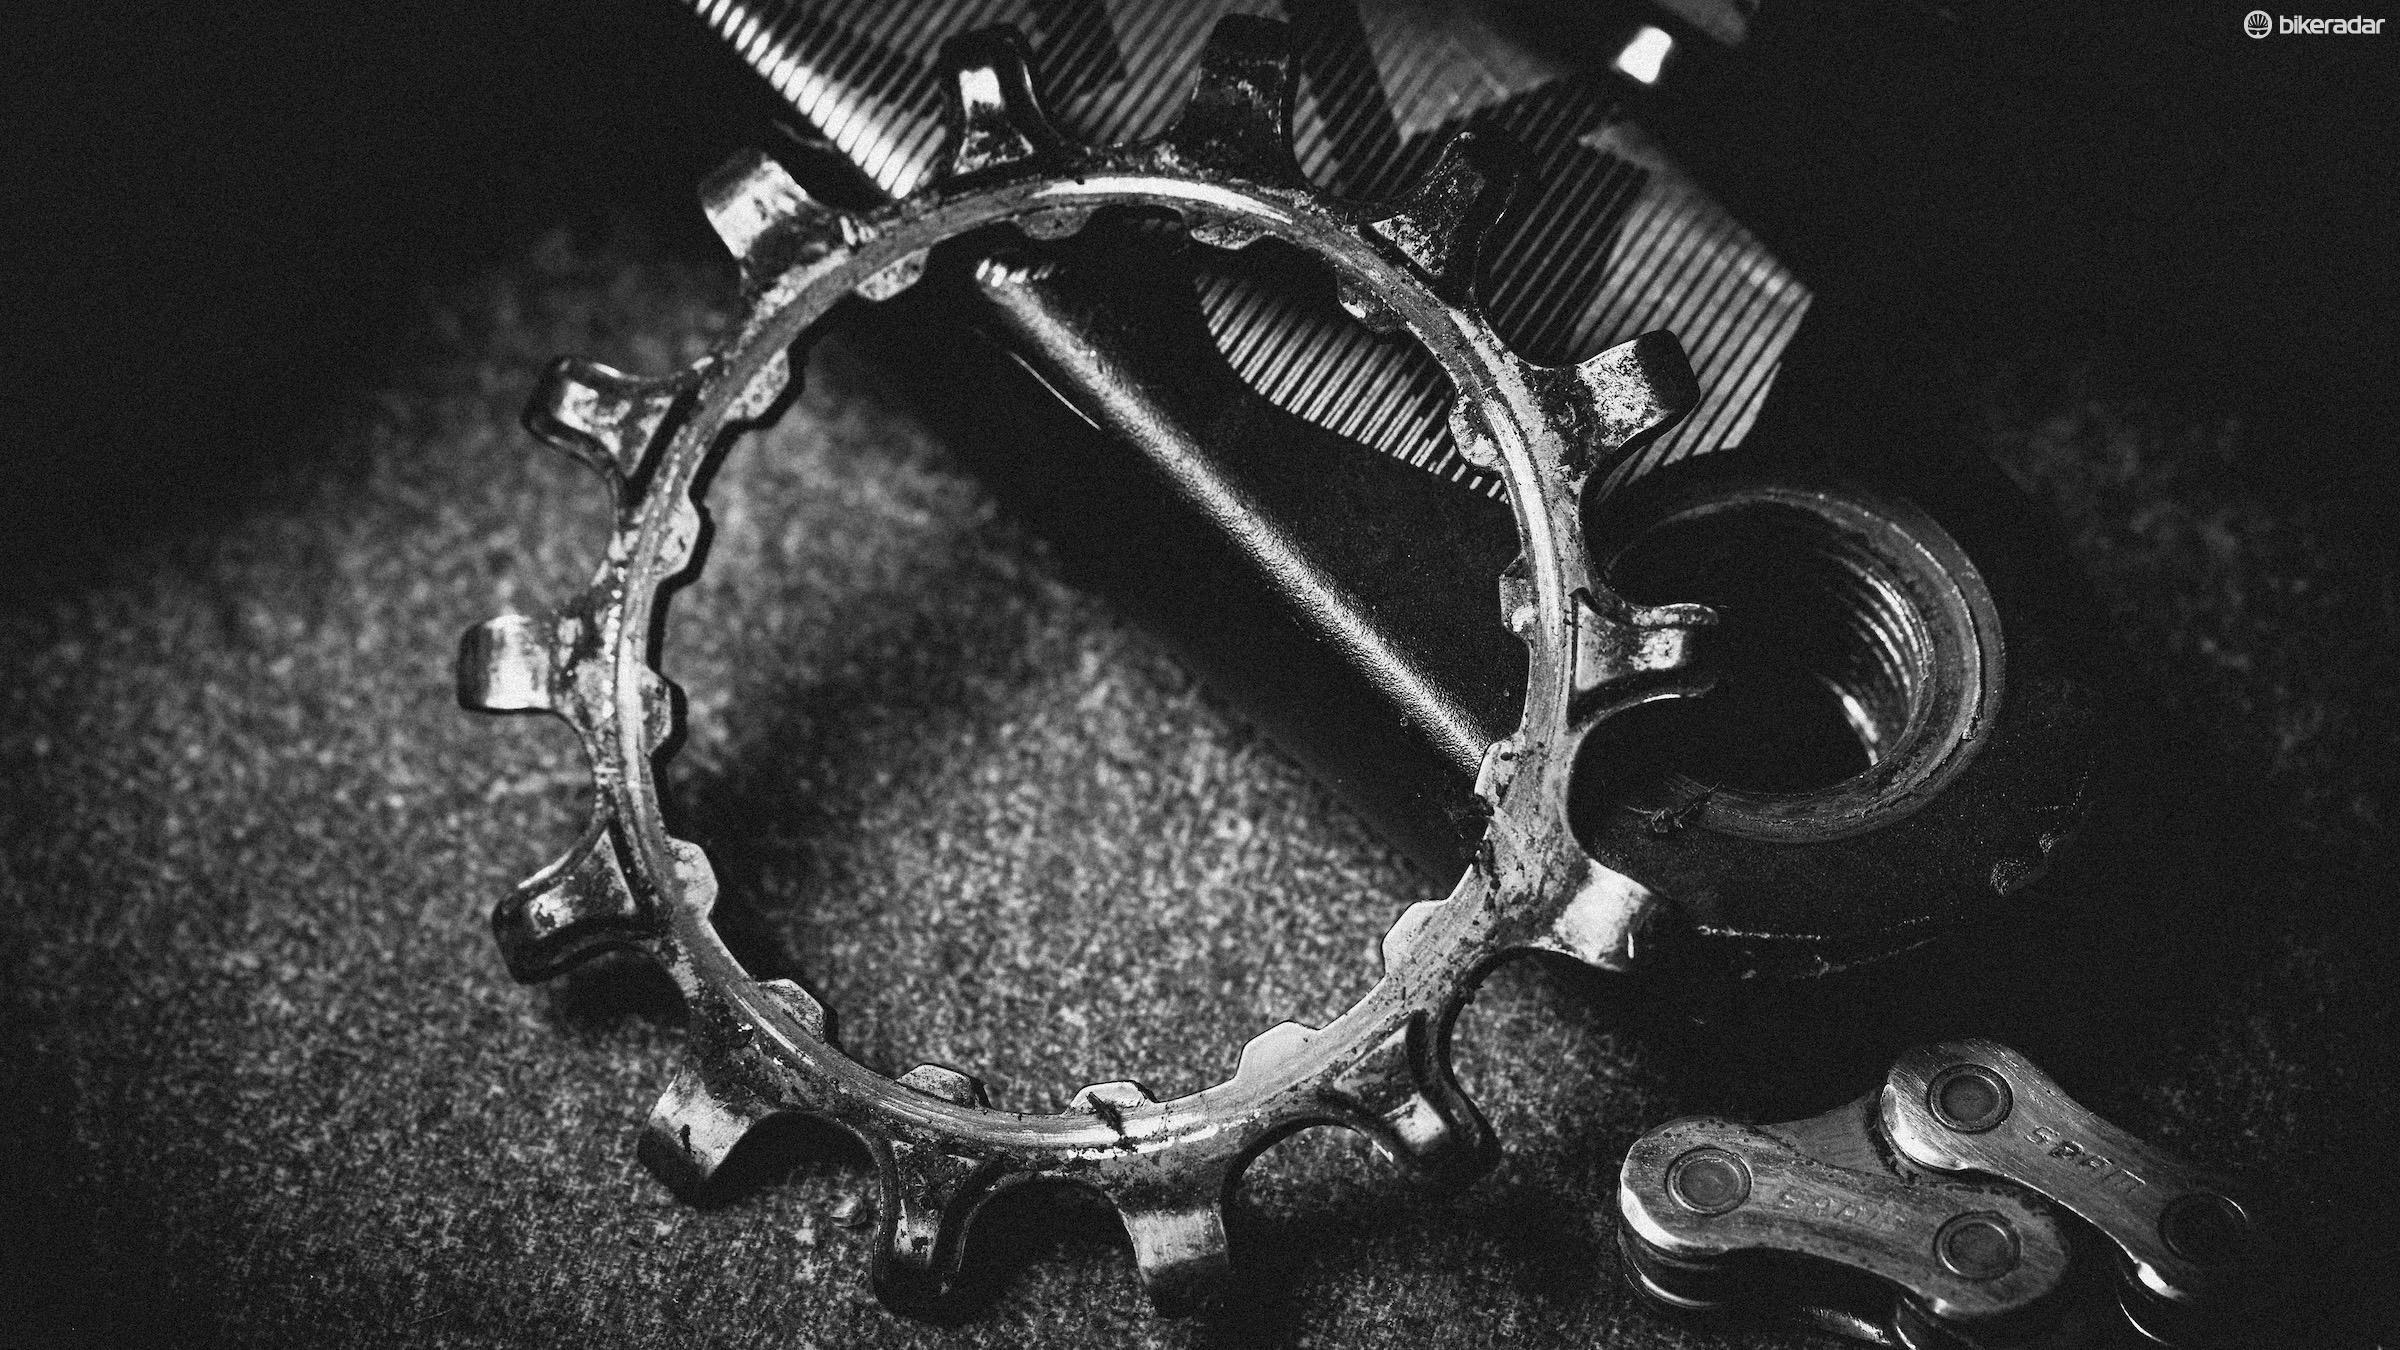 The smaller chainrings take some wear, but are easy and cheap to replace